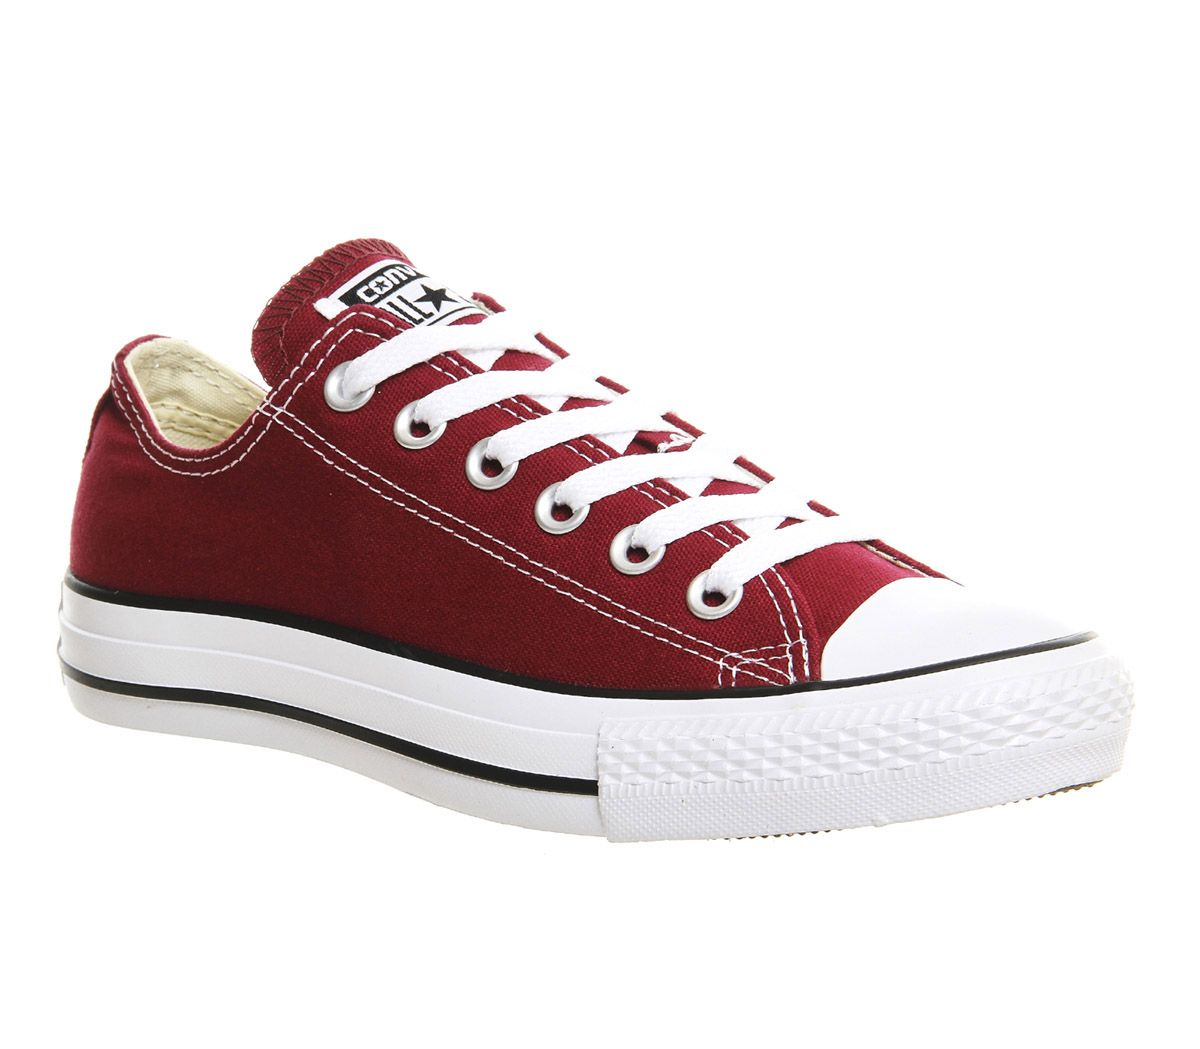 729aacb08d94 Converse All Star Low Maroon Canvas - Unisex Sports